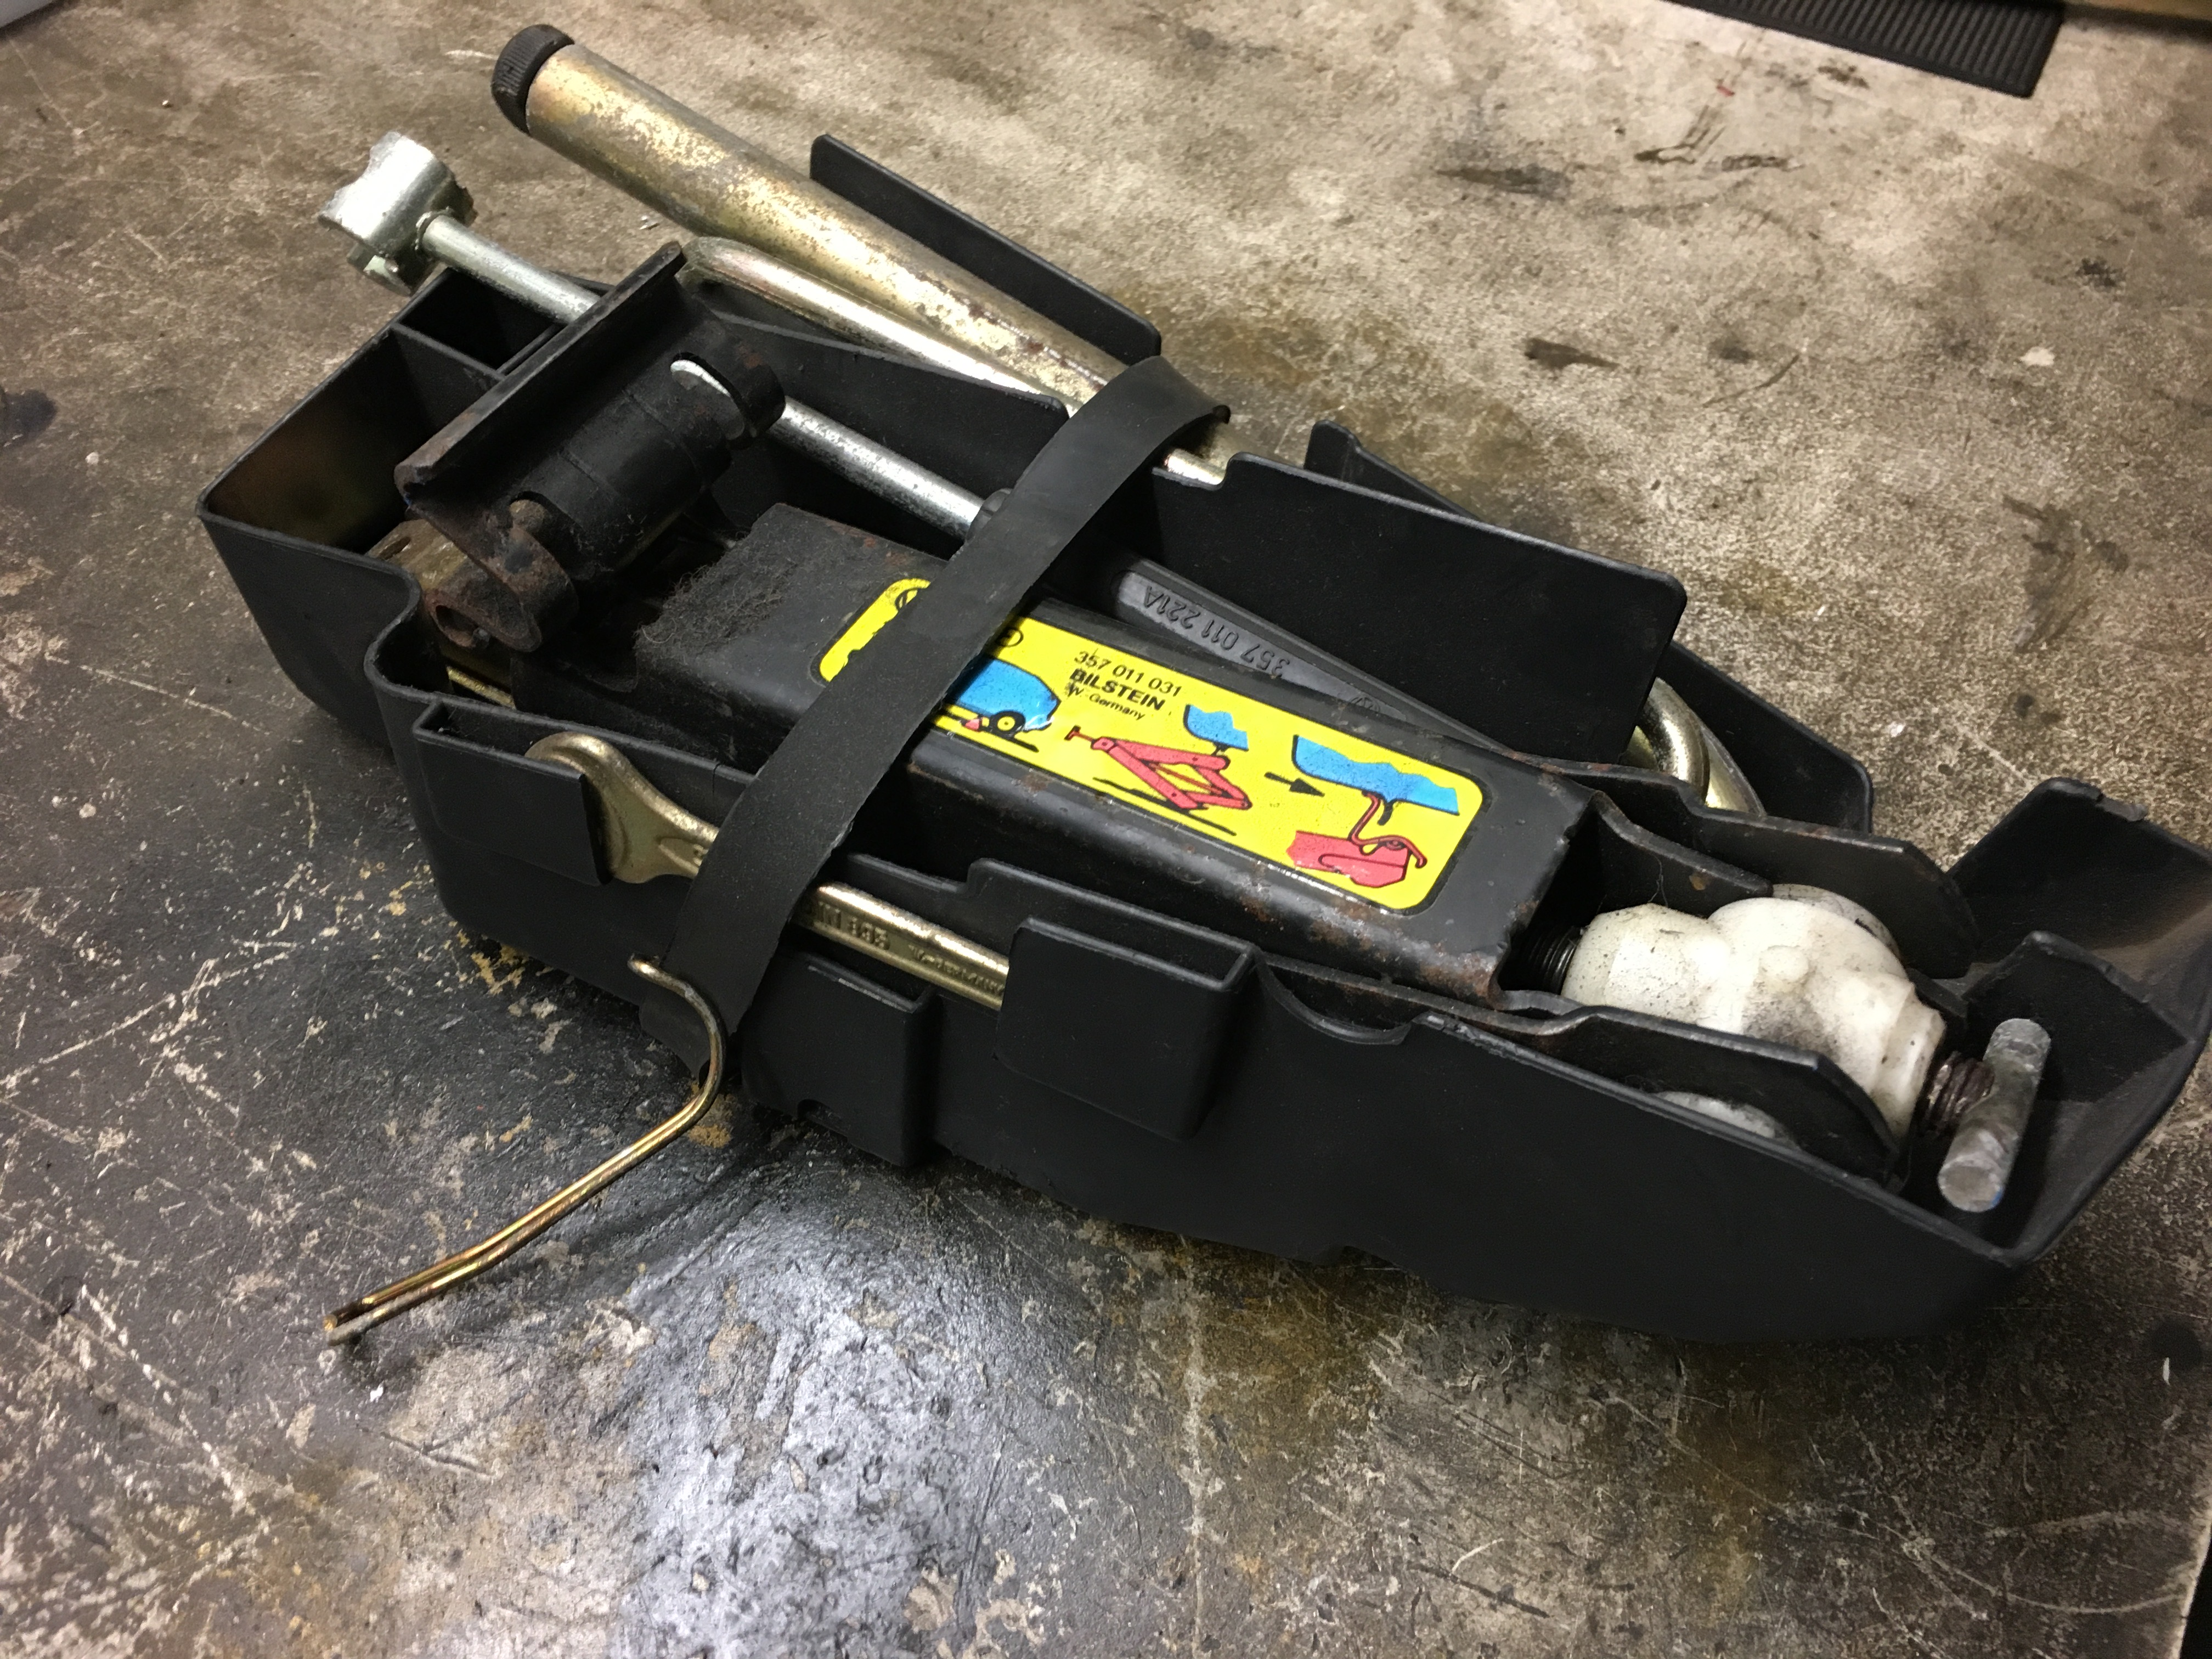 MK2 / MK3 Golf Complete Toolkit